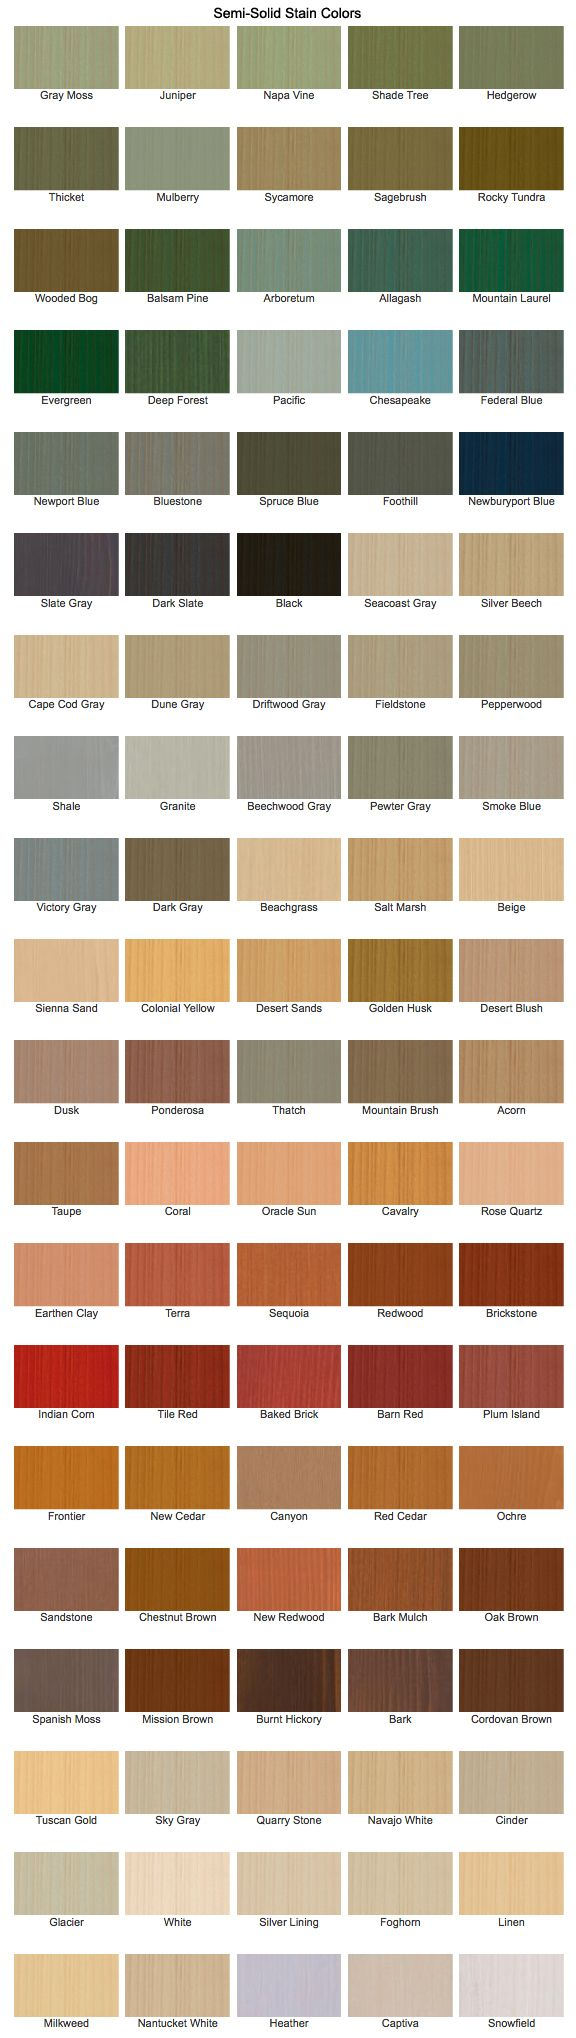 cabot stain semi solid stain color chart deck stain on lowe s exterior paint colors chart id=74612